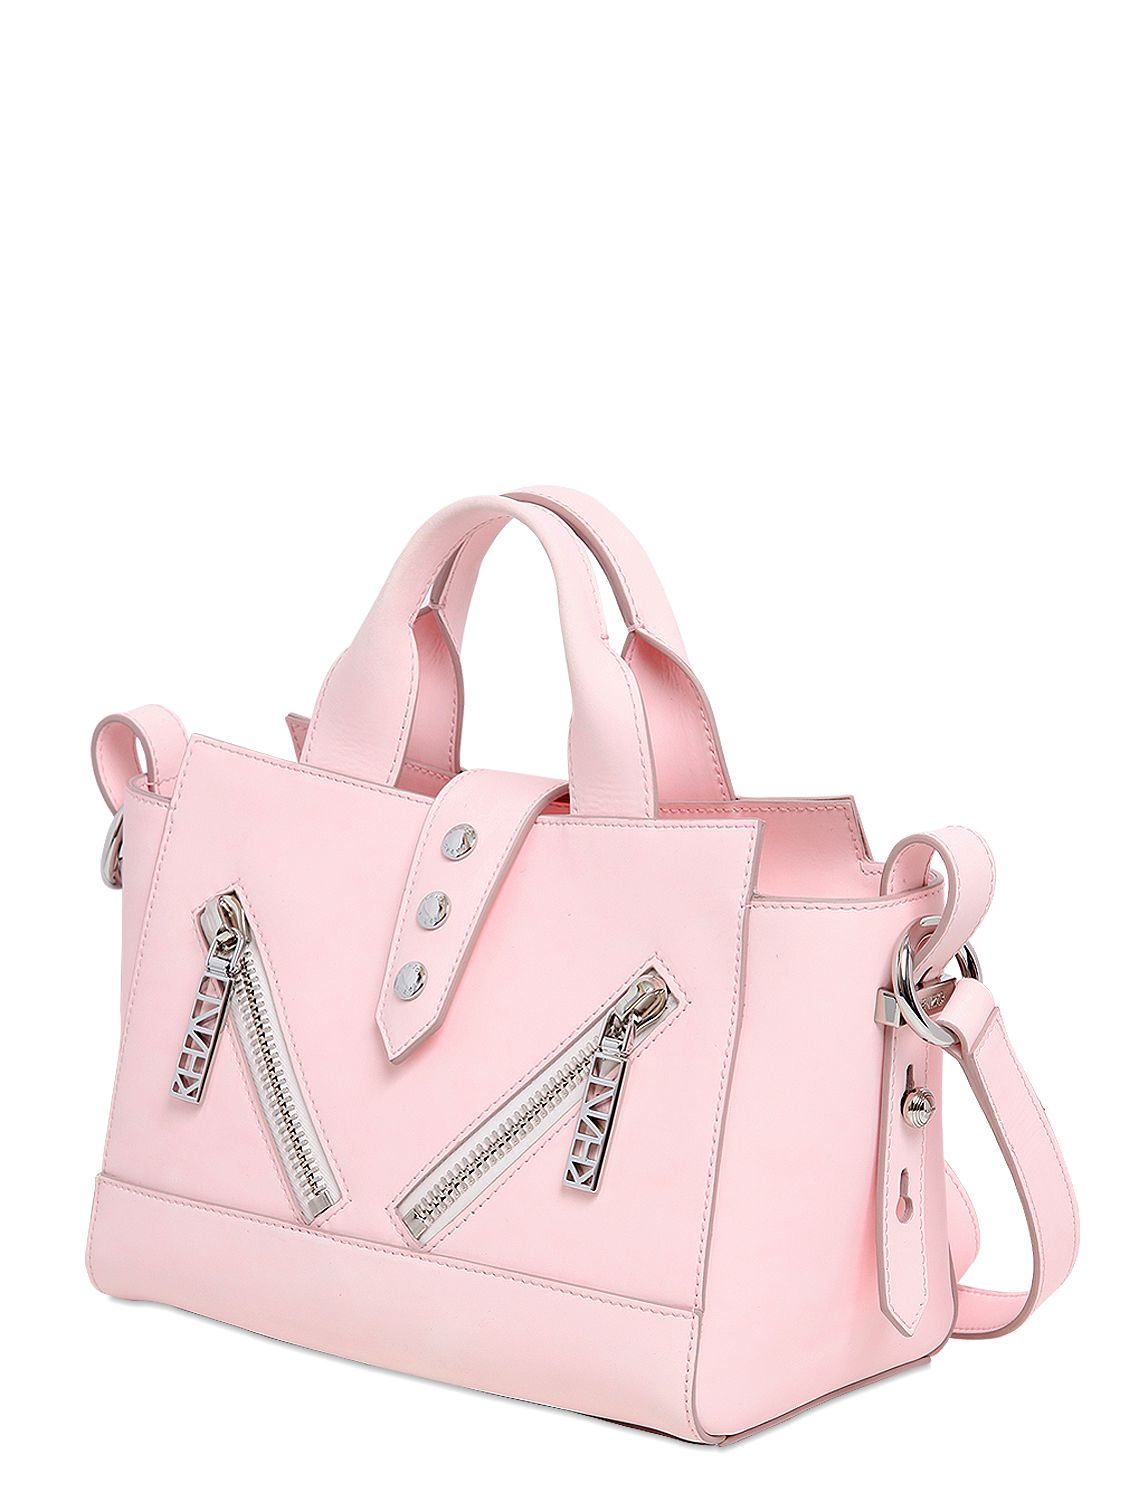 bcf03d6e2a0 Lyst - KENZO Mini Kalifornia Rubberized Leather Bag in Pink